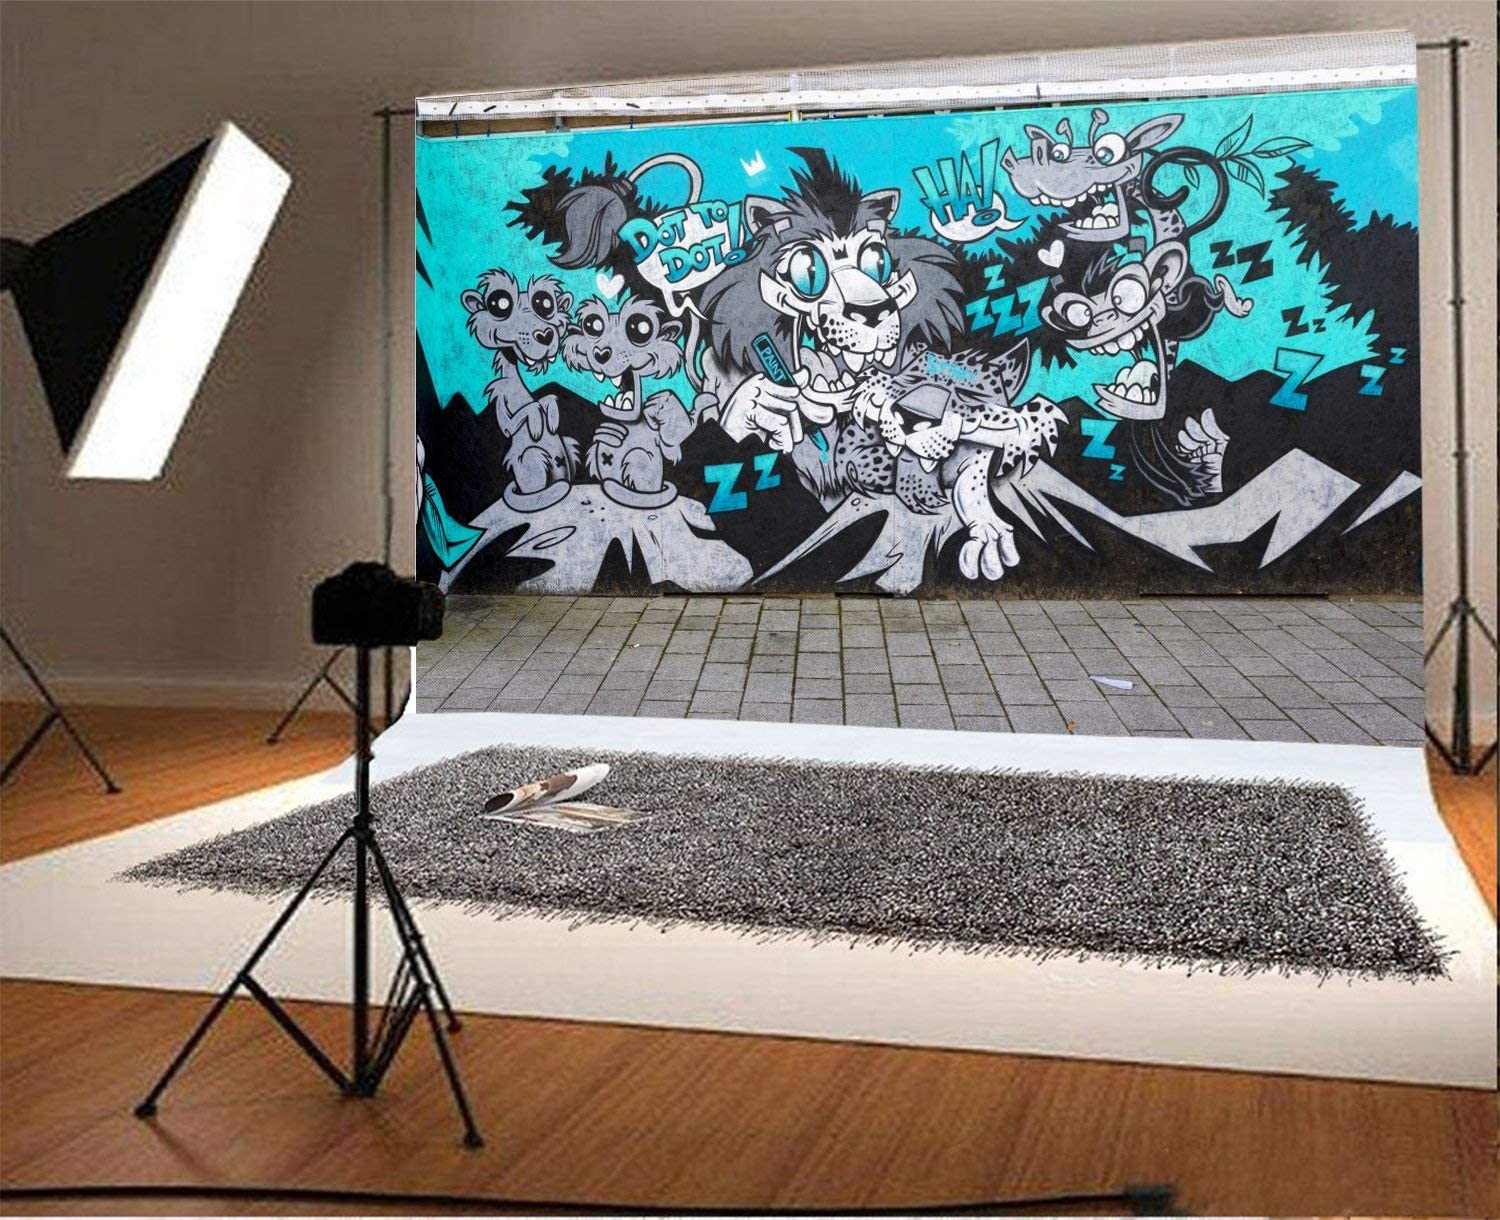 10x6.5ft Polyester Backdrop Photography Background Street Graffiti Wall Scrawl Color Drawing Abstract Creative Fashion Color City Wall Animal Pattern Paint Brick Floor Background Photo Studio Prop